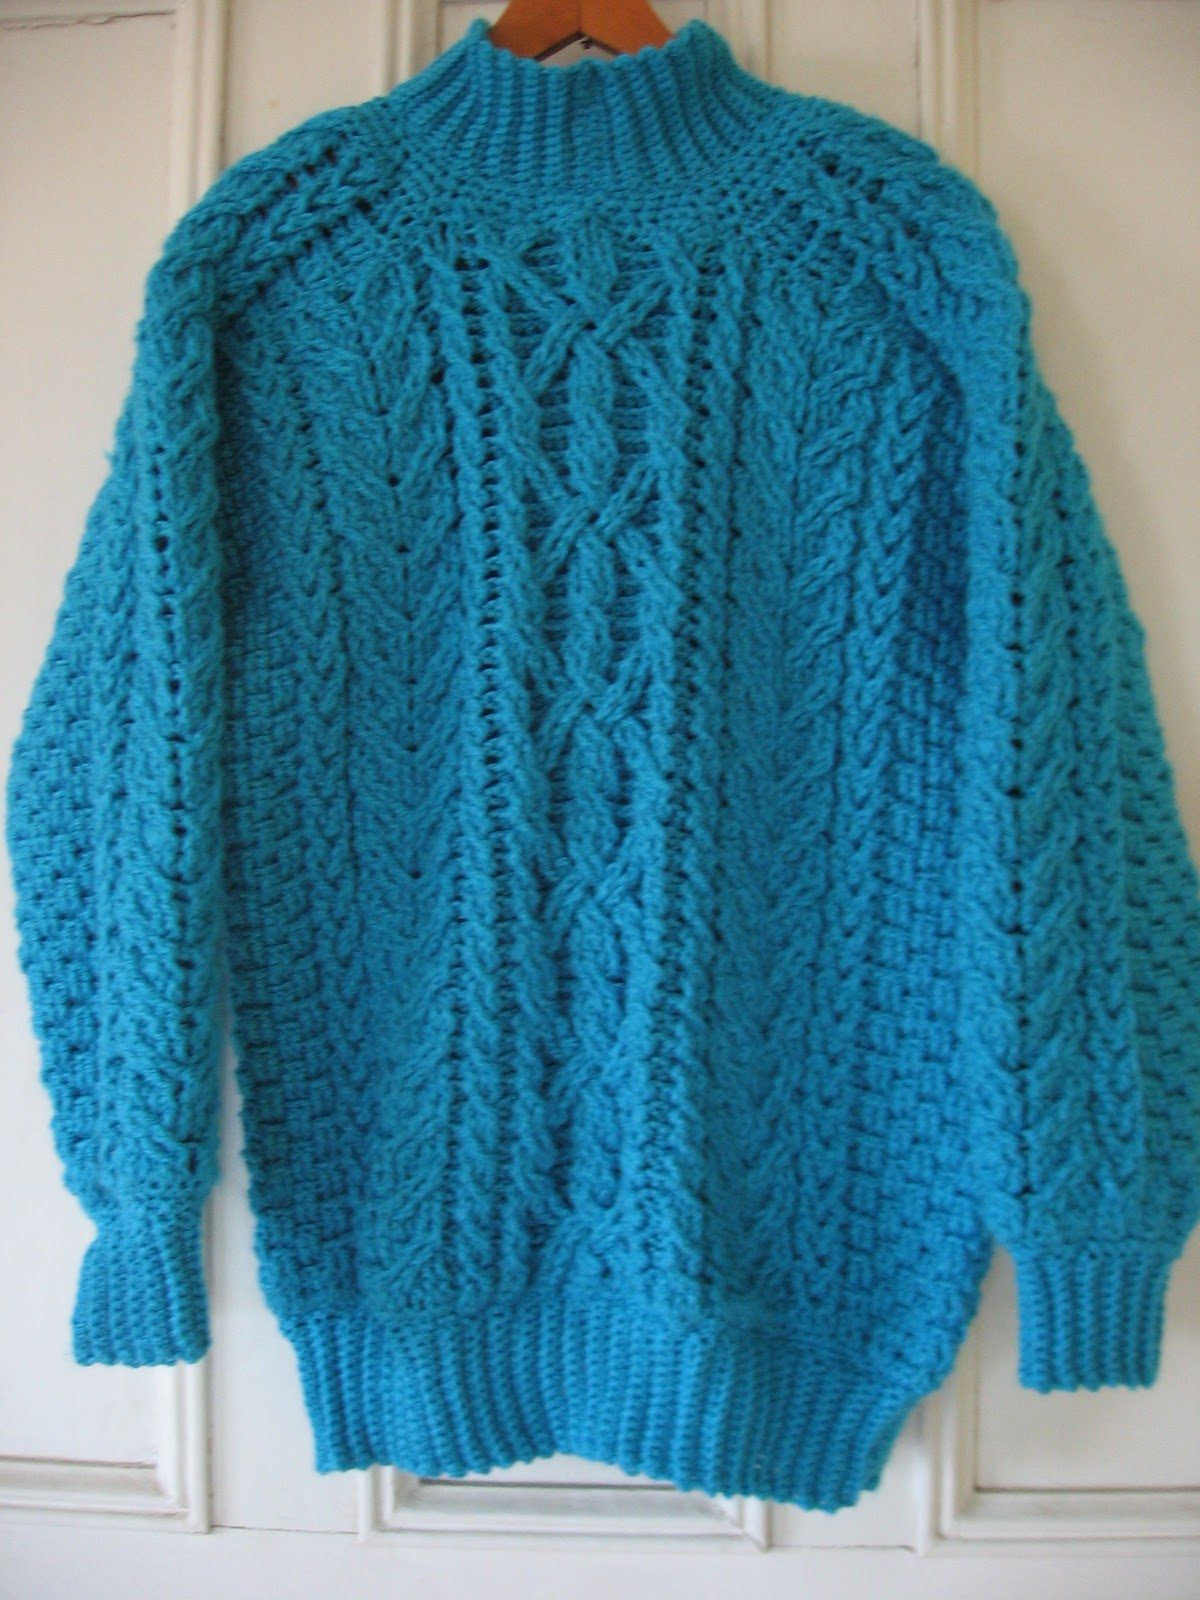 Crochet & Knit Enthusiasts: Aran (Fishermans) Sweater Crochet